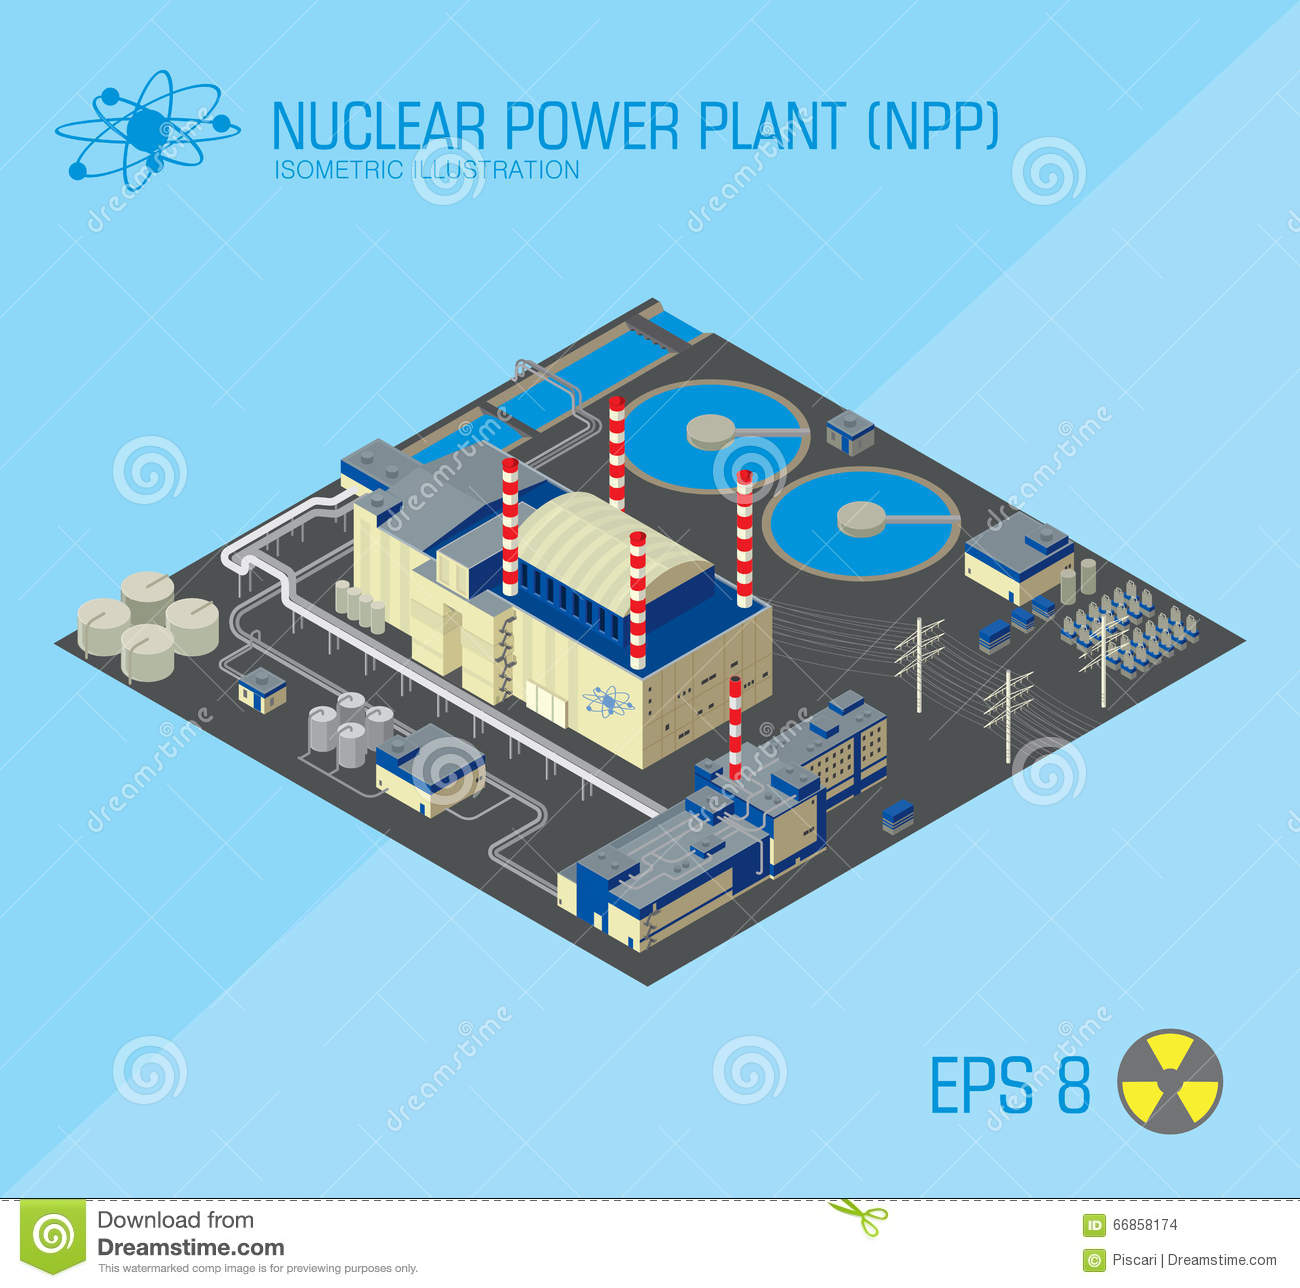 Nuclear Power Plant Stock Vector Illustration Of Isometric 66858174 Diagram And Explanation